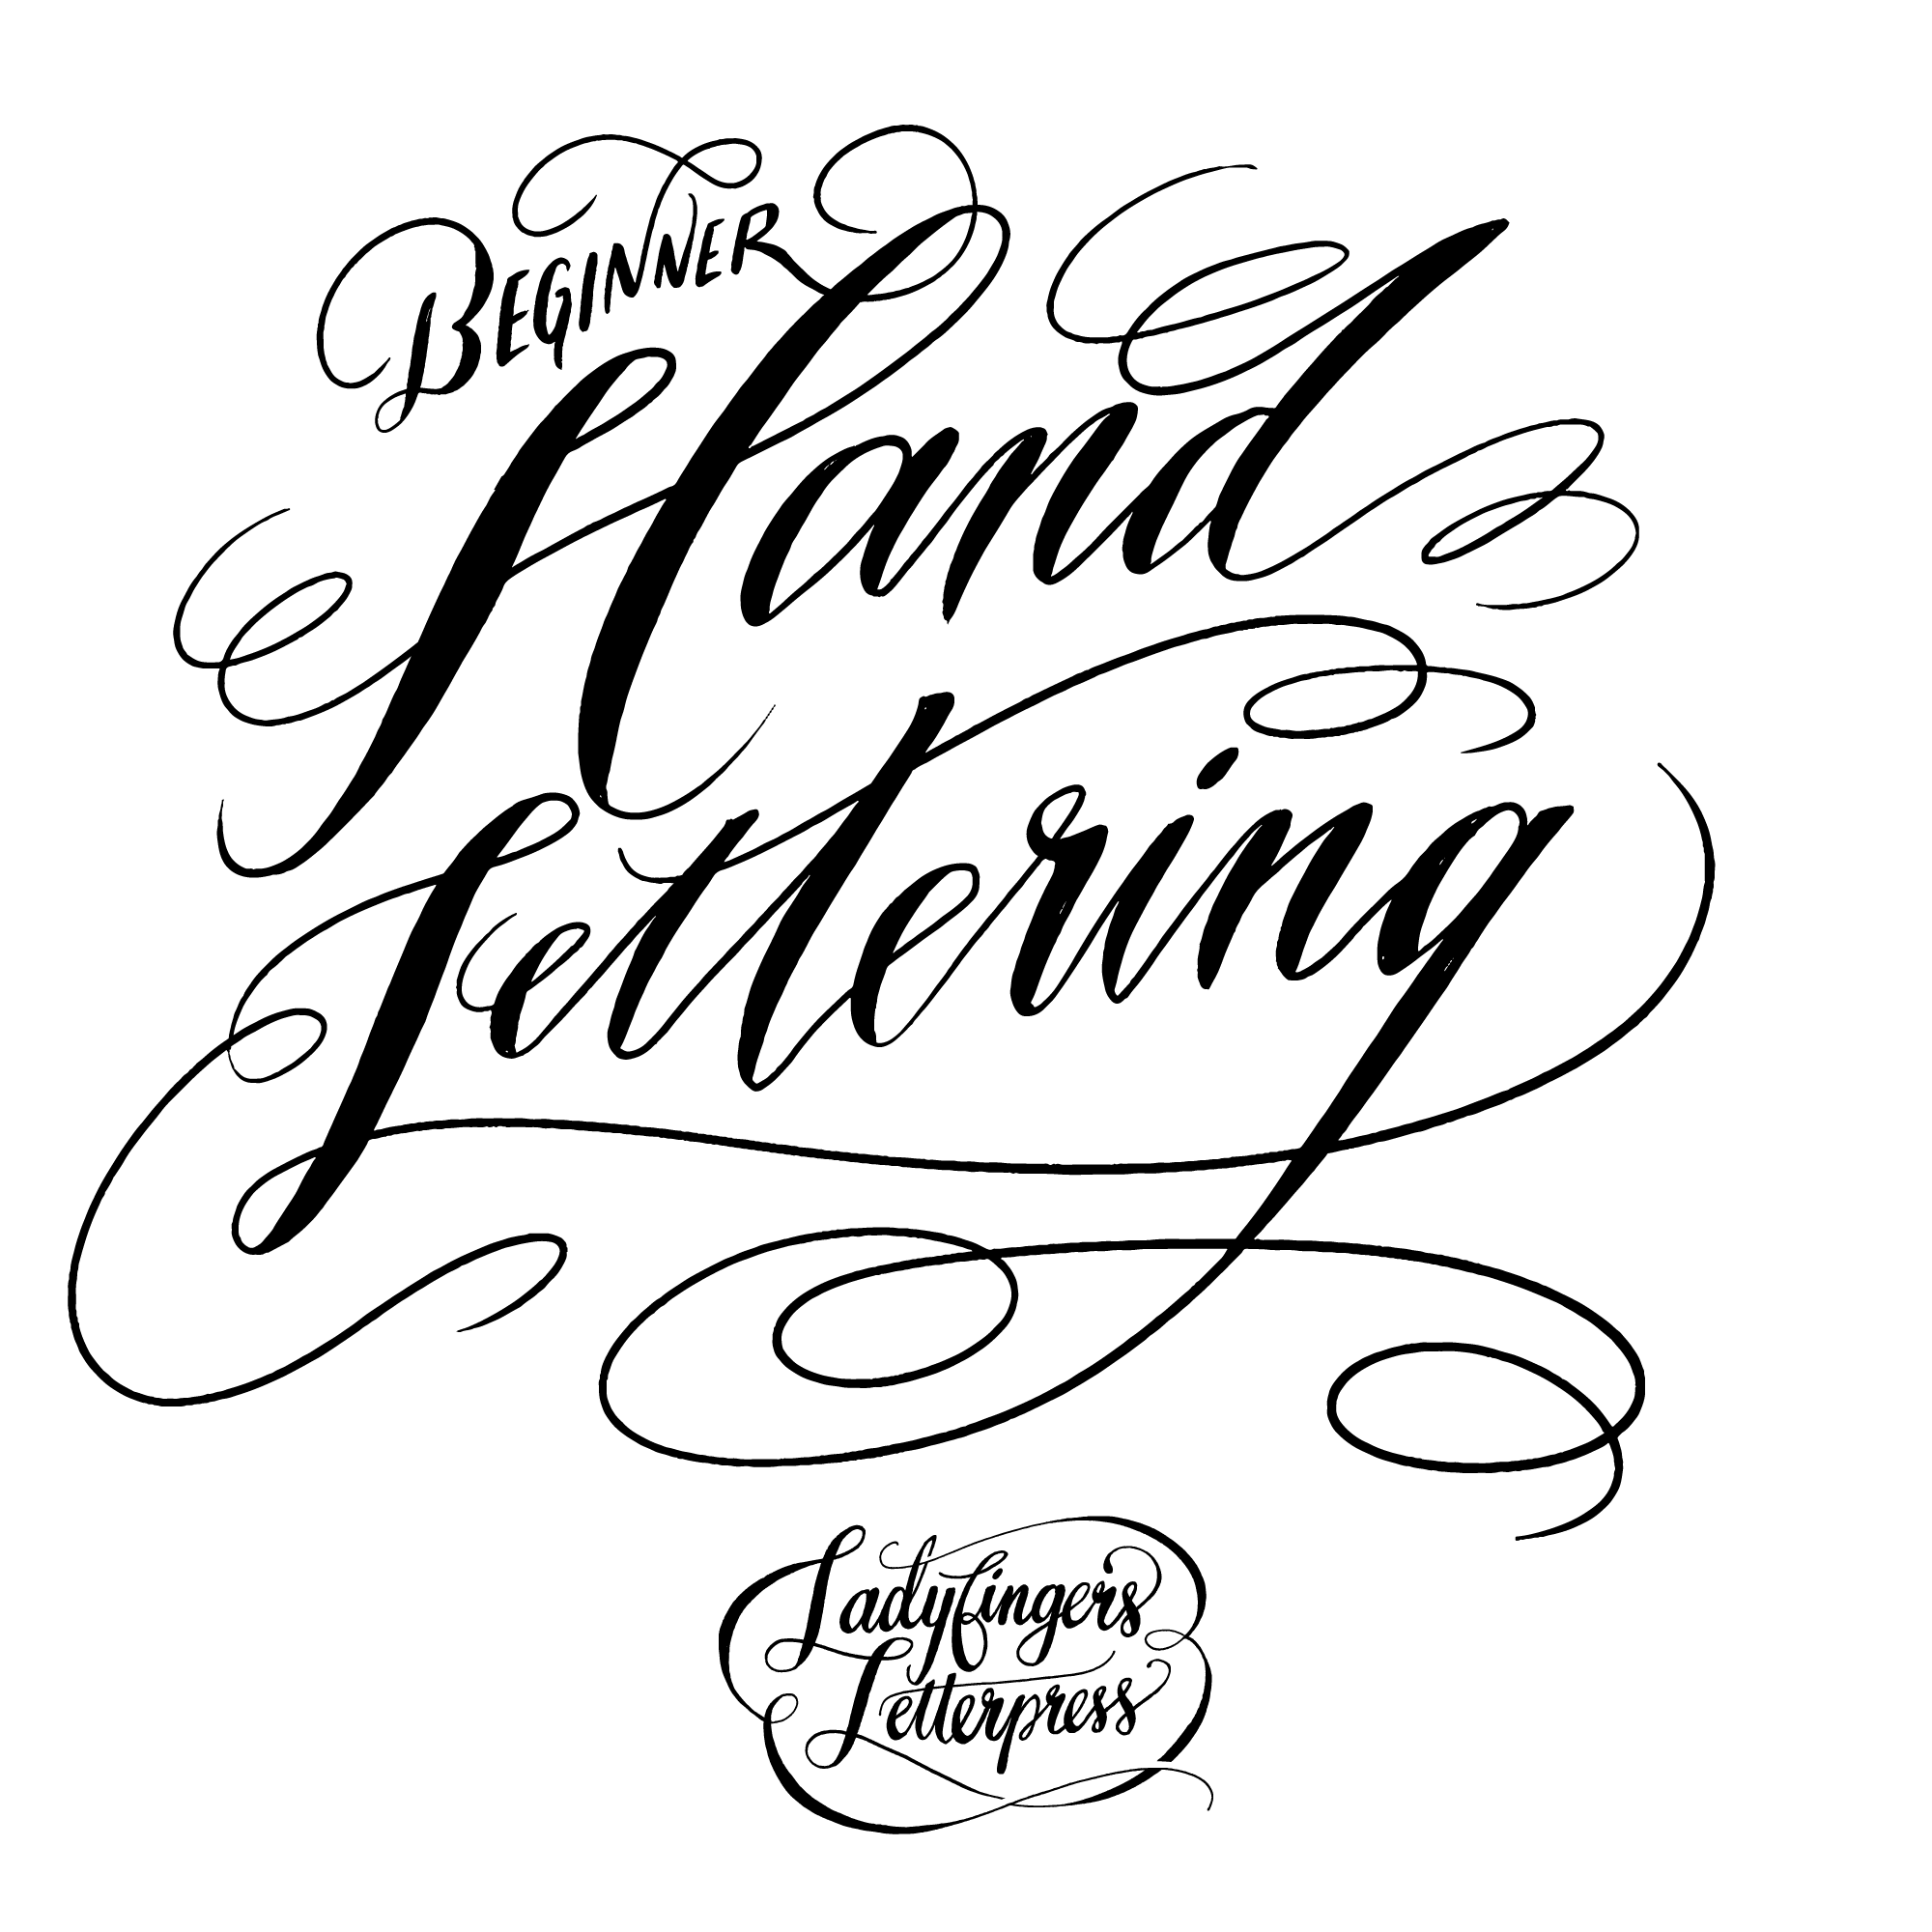 hand lettering for beginners october 2018 workshop ladyfingers